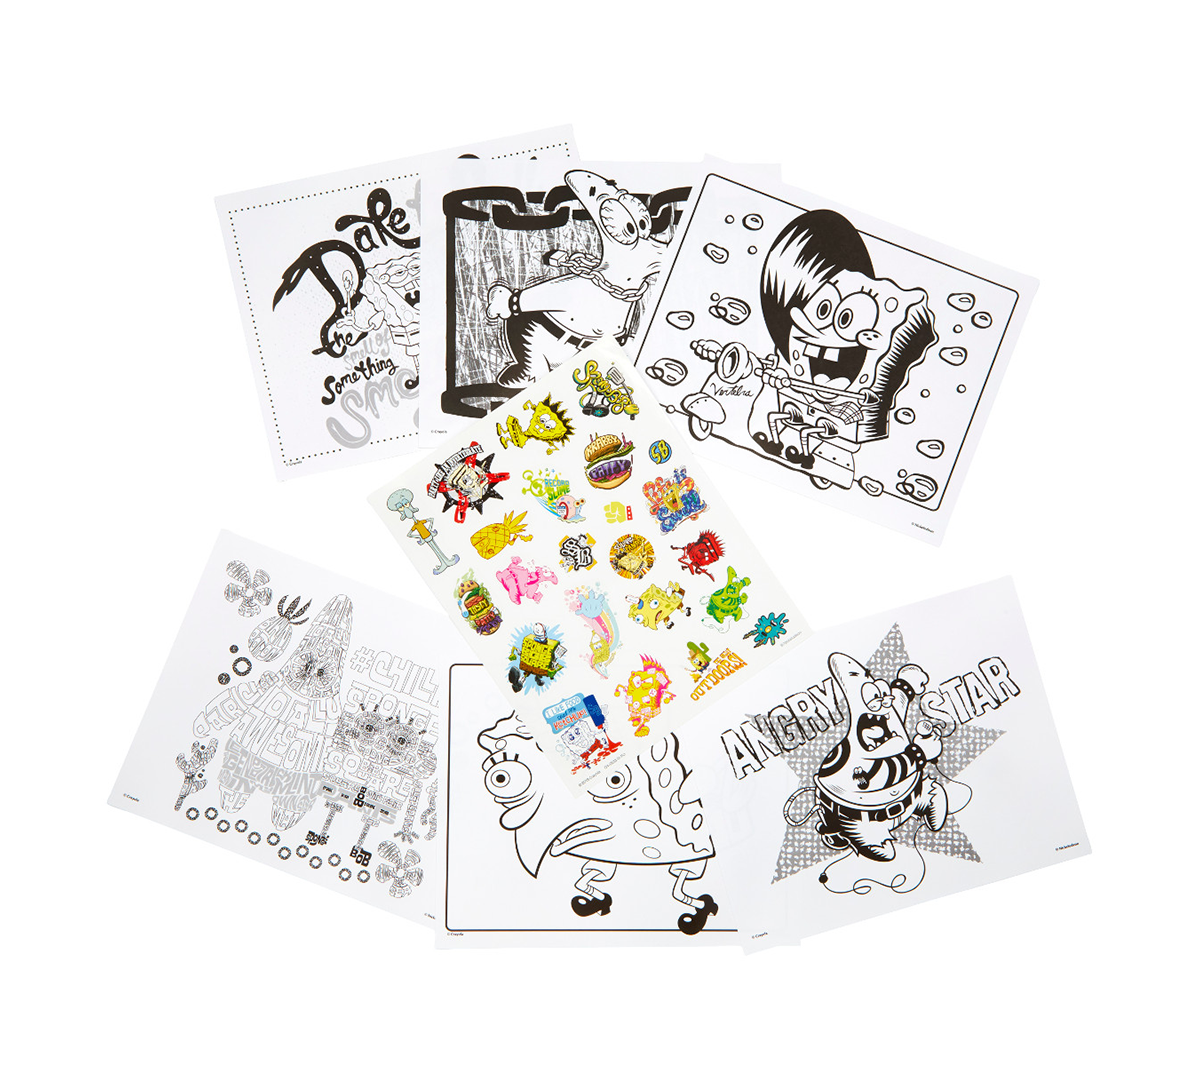 Spongebob Squarepants Coloring Pages Stickers Crayola Com Crayola